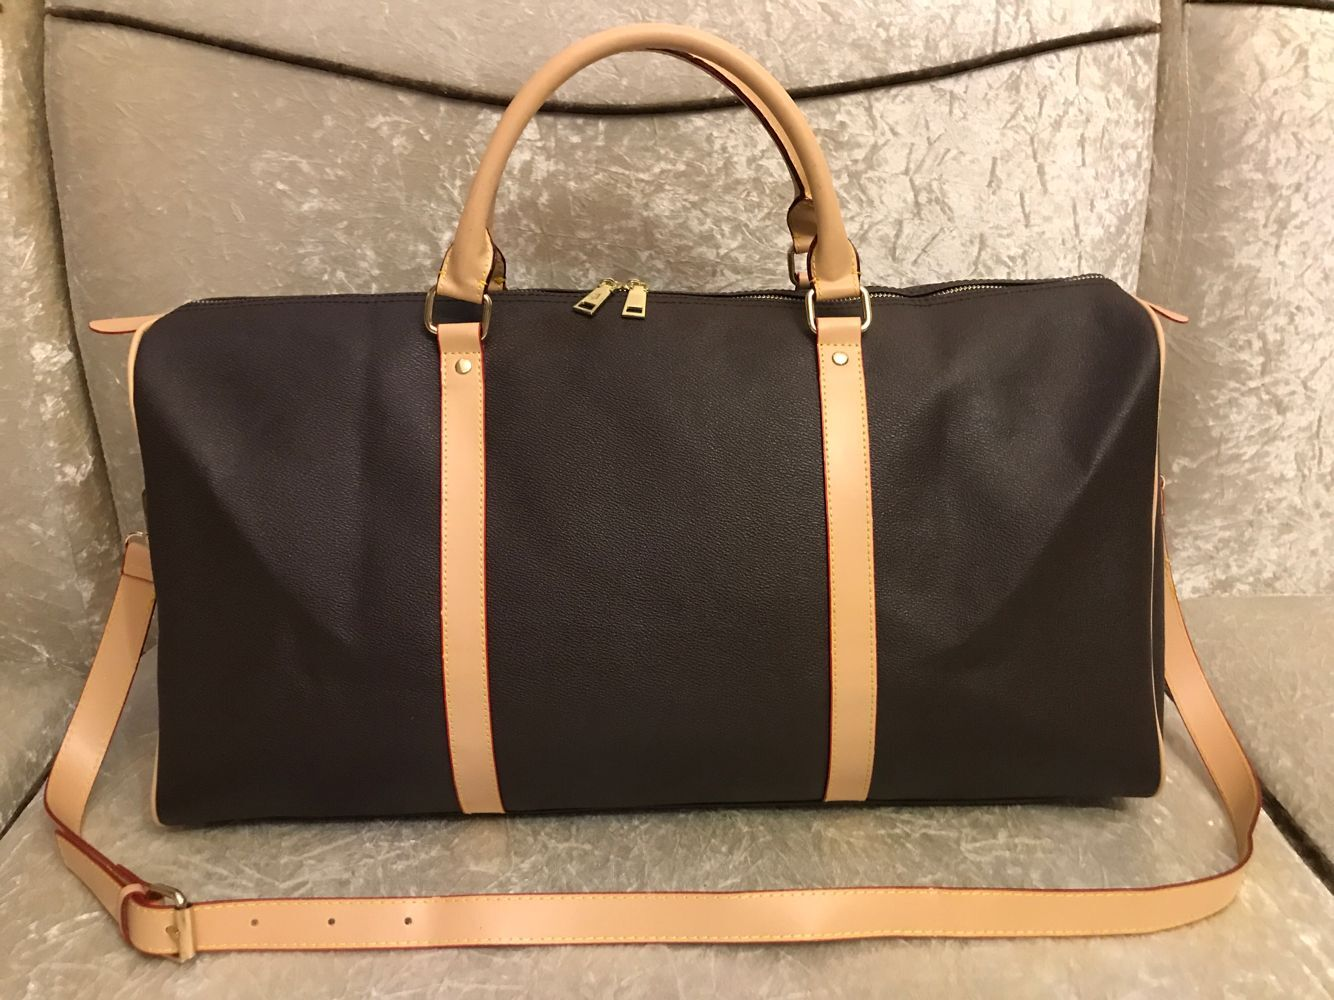 eBay | GRAND SAC BAG voyage WEEK END XL CUIR Facon croco